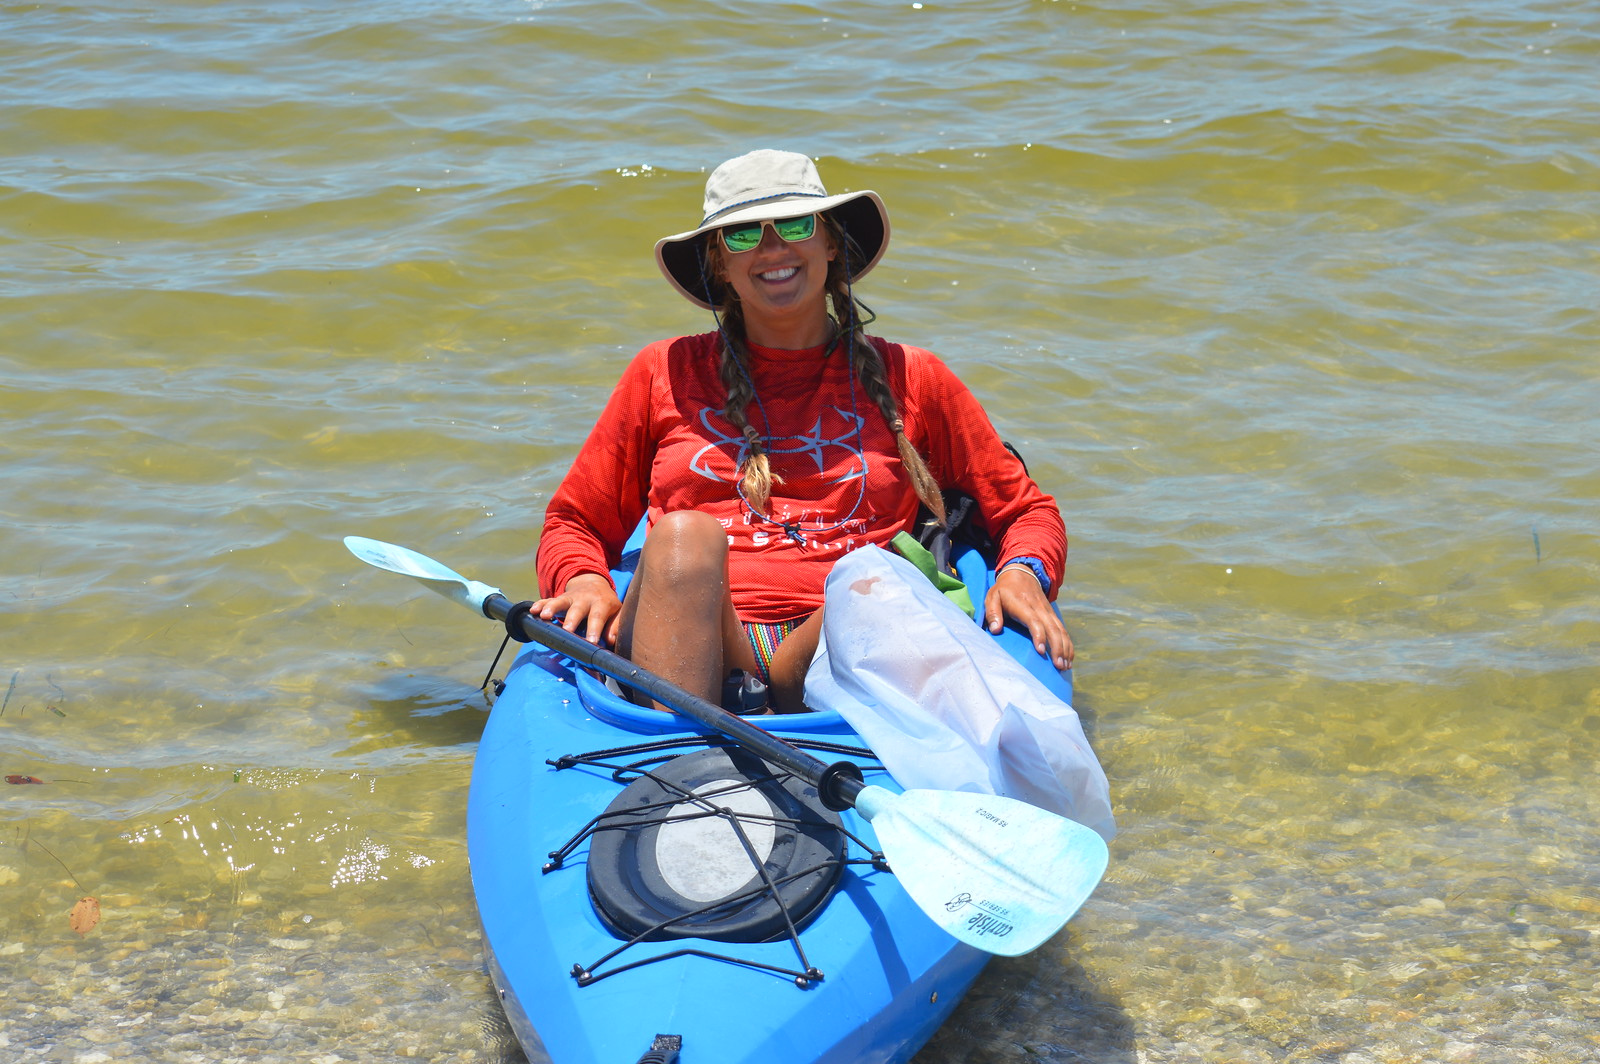 Sun protection is an essential element of paddling safety.